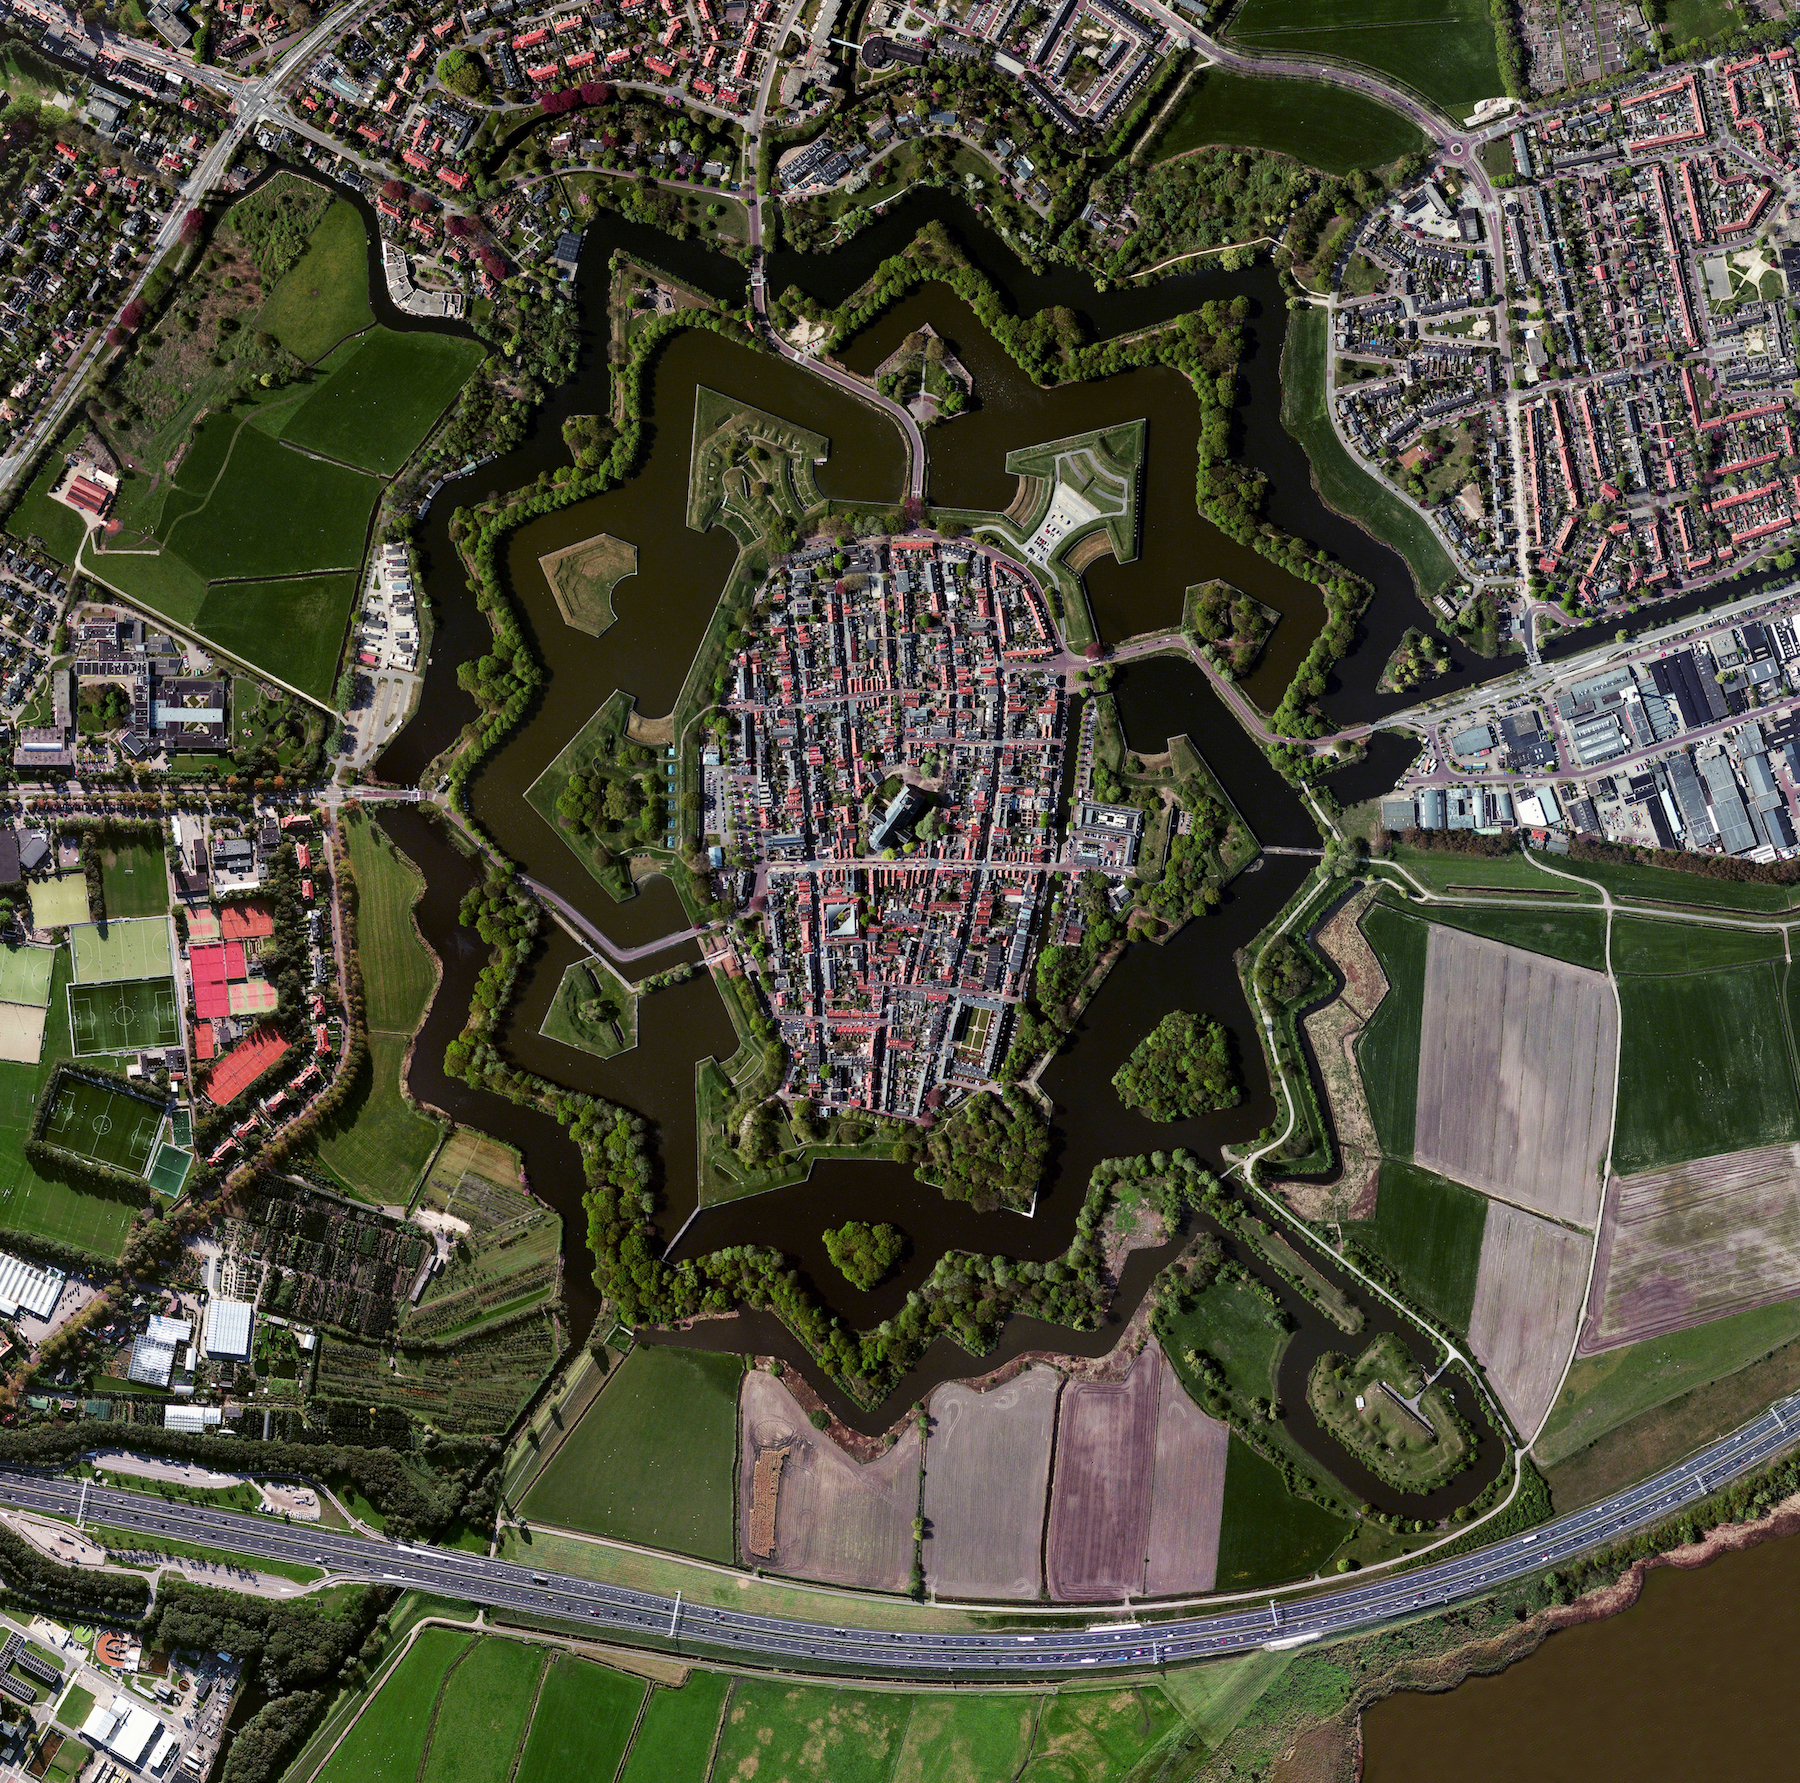 7/27/2016   Naarden   Naarden, Netherlands  52°18′N 5°10′E     Naarden is a star fort in the Netherlands. The city was constructed in the manner seen here so that an attack on any individual wall could be defended from the two adjacent star points by shooting at the enemy from behind. Today Naarden is home to roughly 17,000 residents.